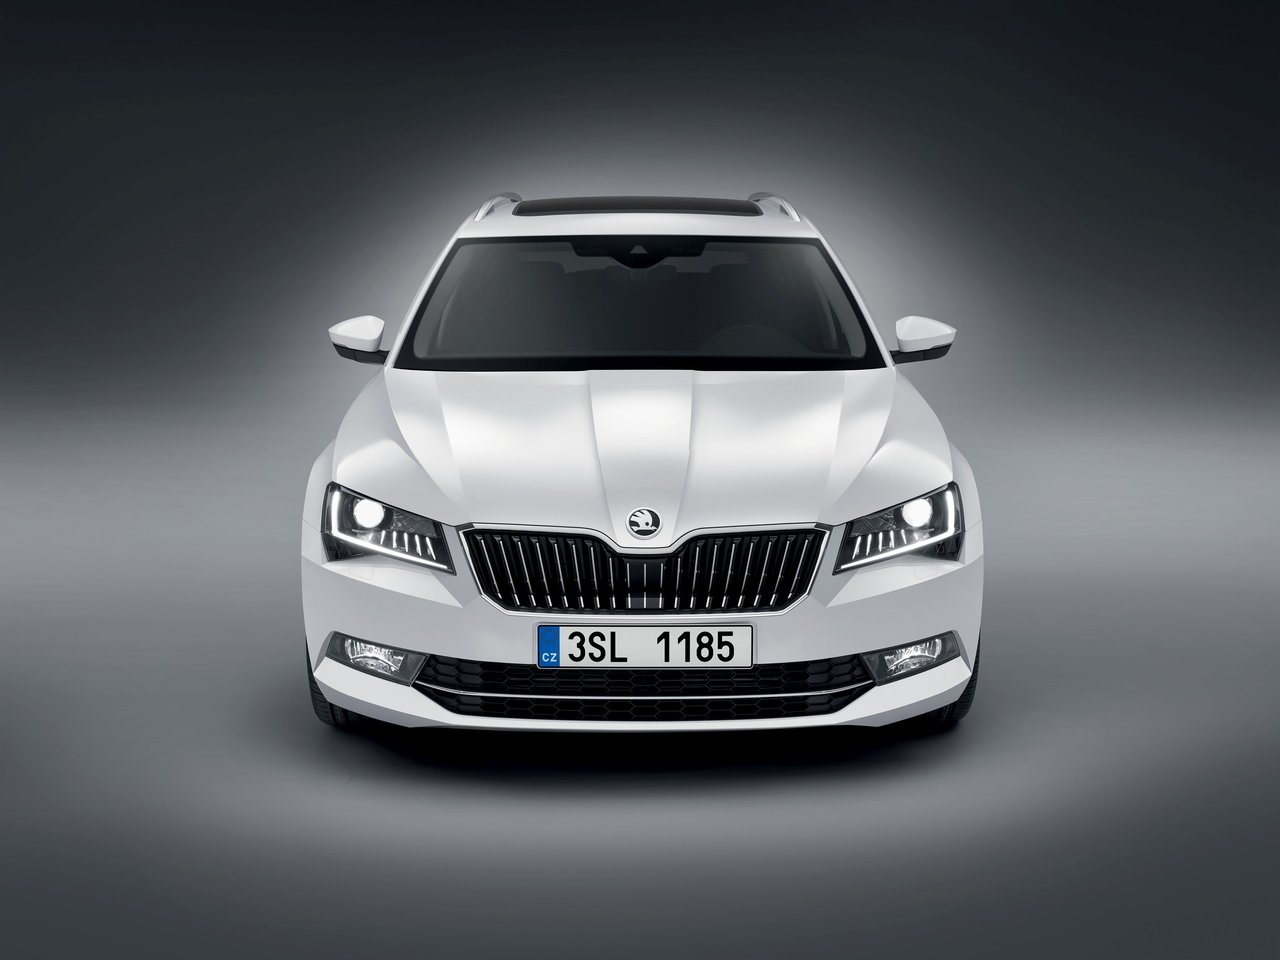 skoda superb ii combi facelift 2013 2 0 tsi 200 hp dsg. Black Bedroom Furniture Sets. Home Design Ideas